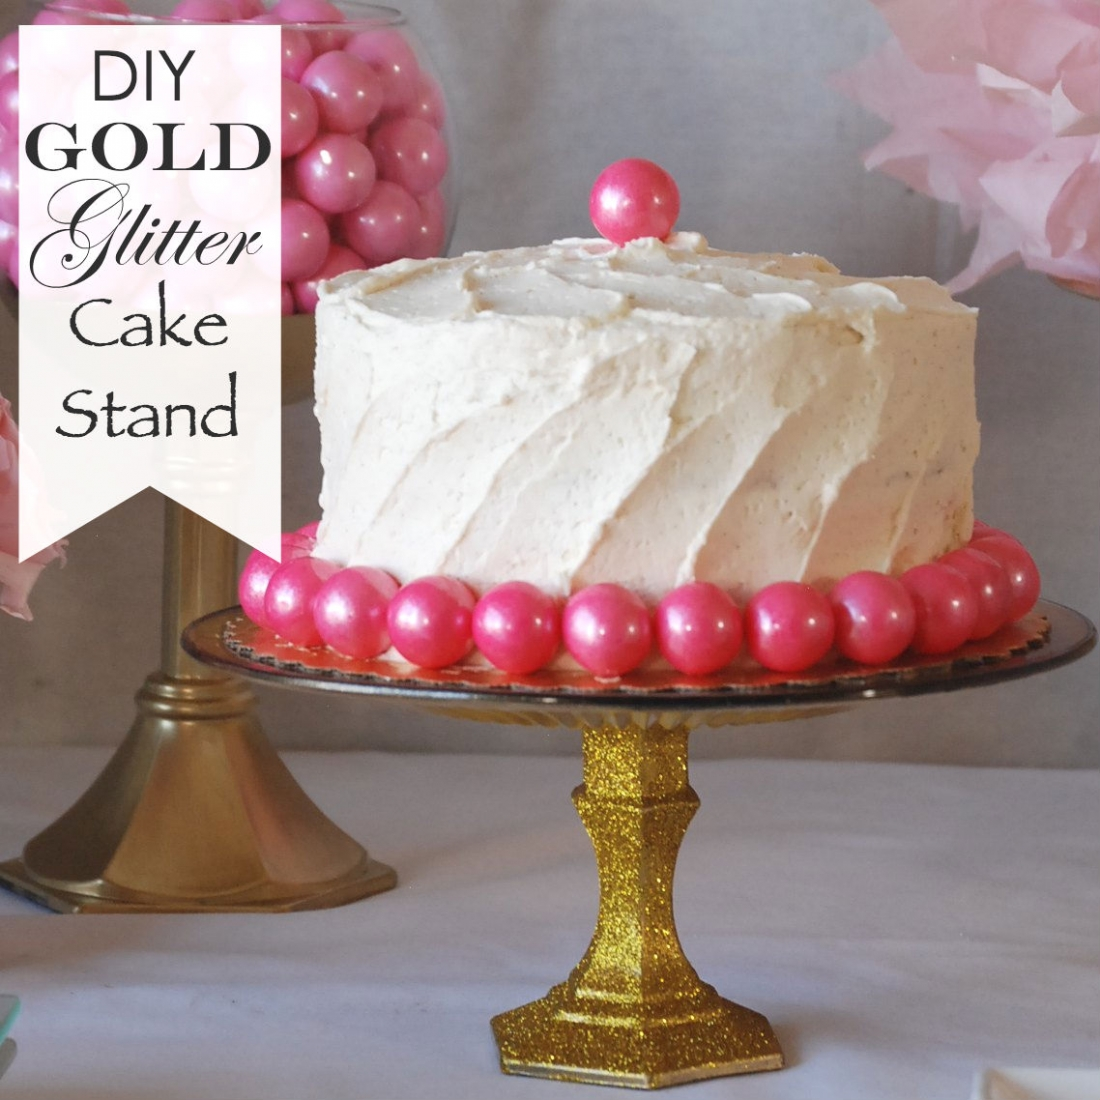 Diy Gold Glitter Cake Stand Endlessly Inspired